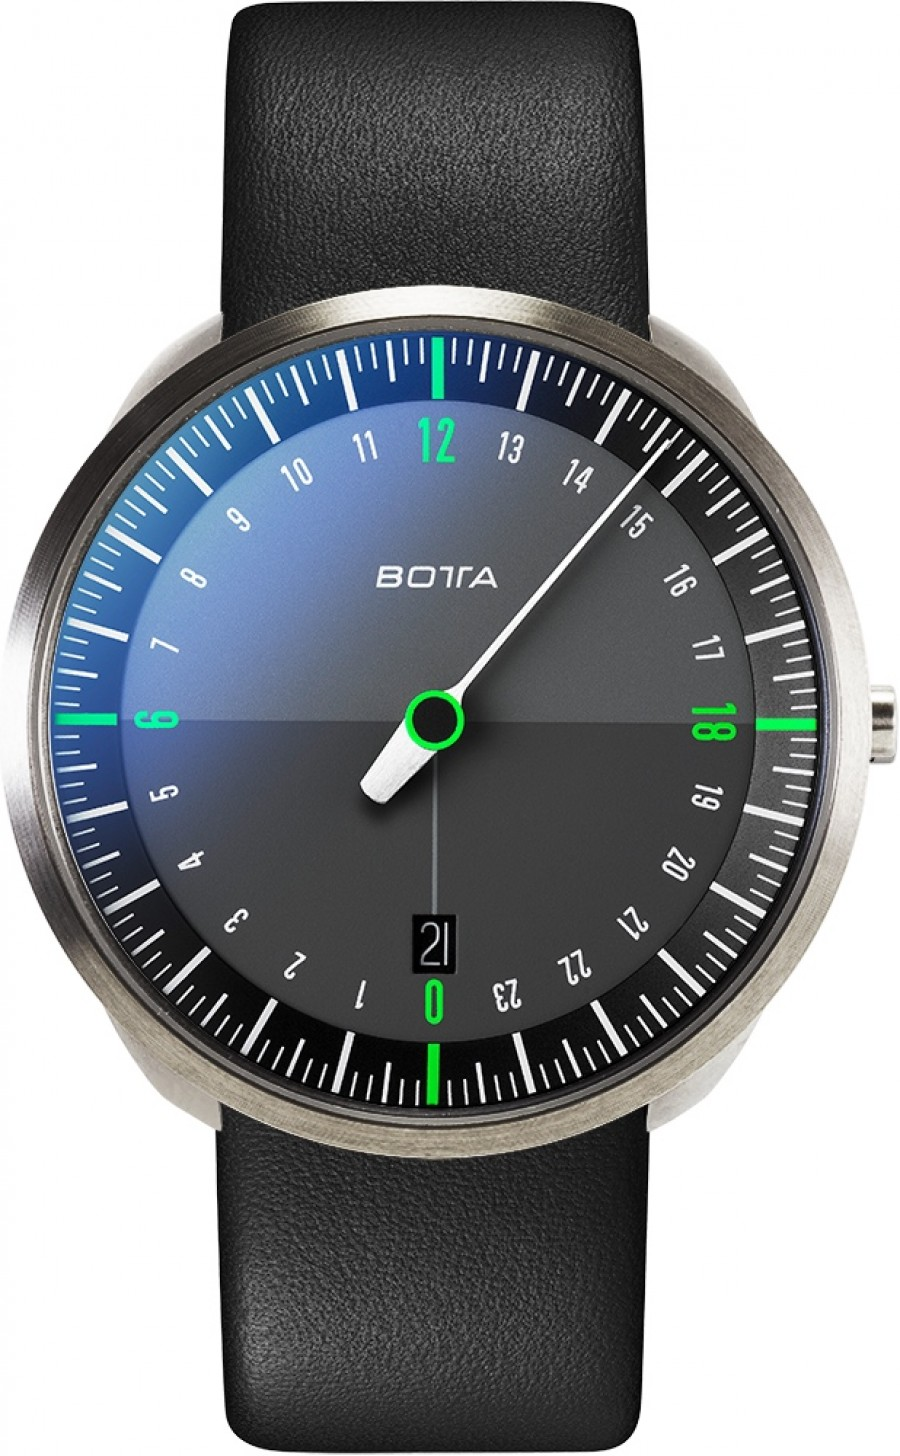 Botta Design uno 24 titan black-green 428010 quartz 40mm